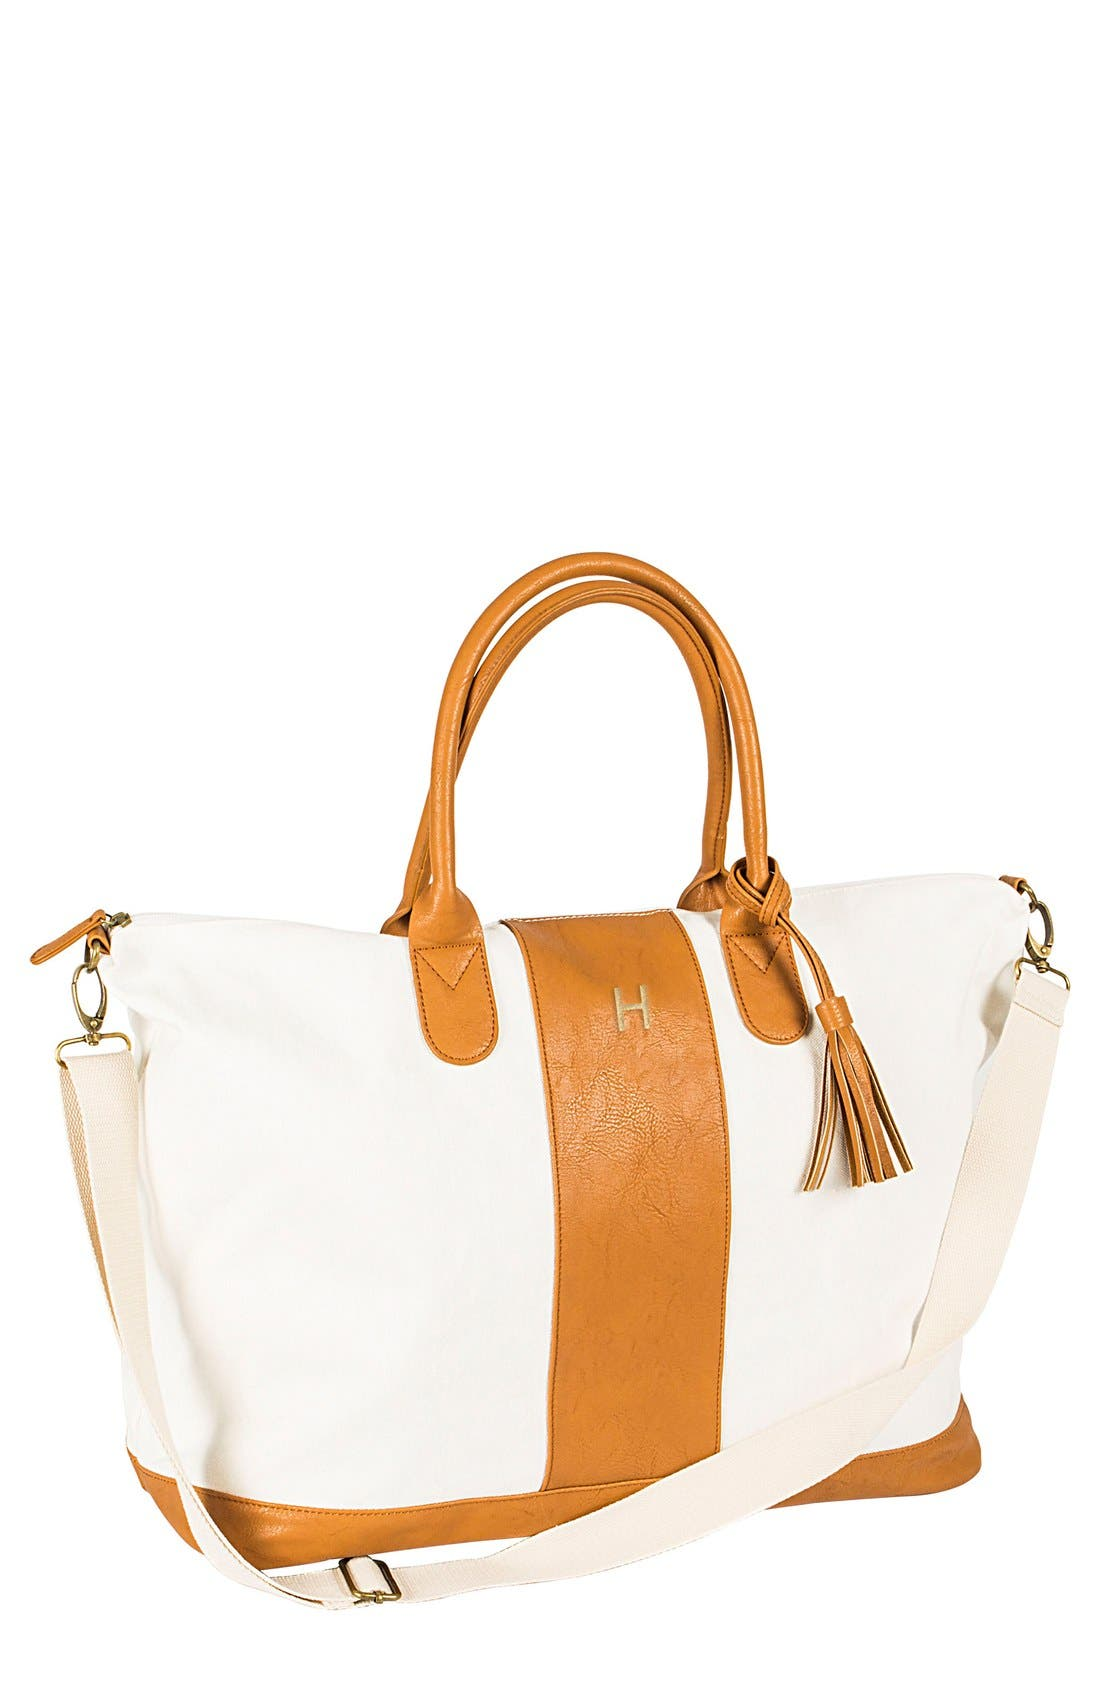 CATHYS CONCEPTS Monogram Faux Leather Tote